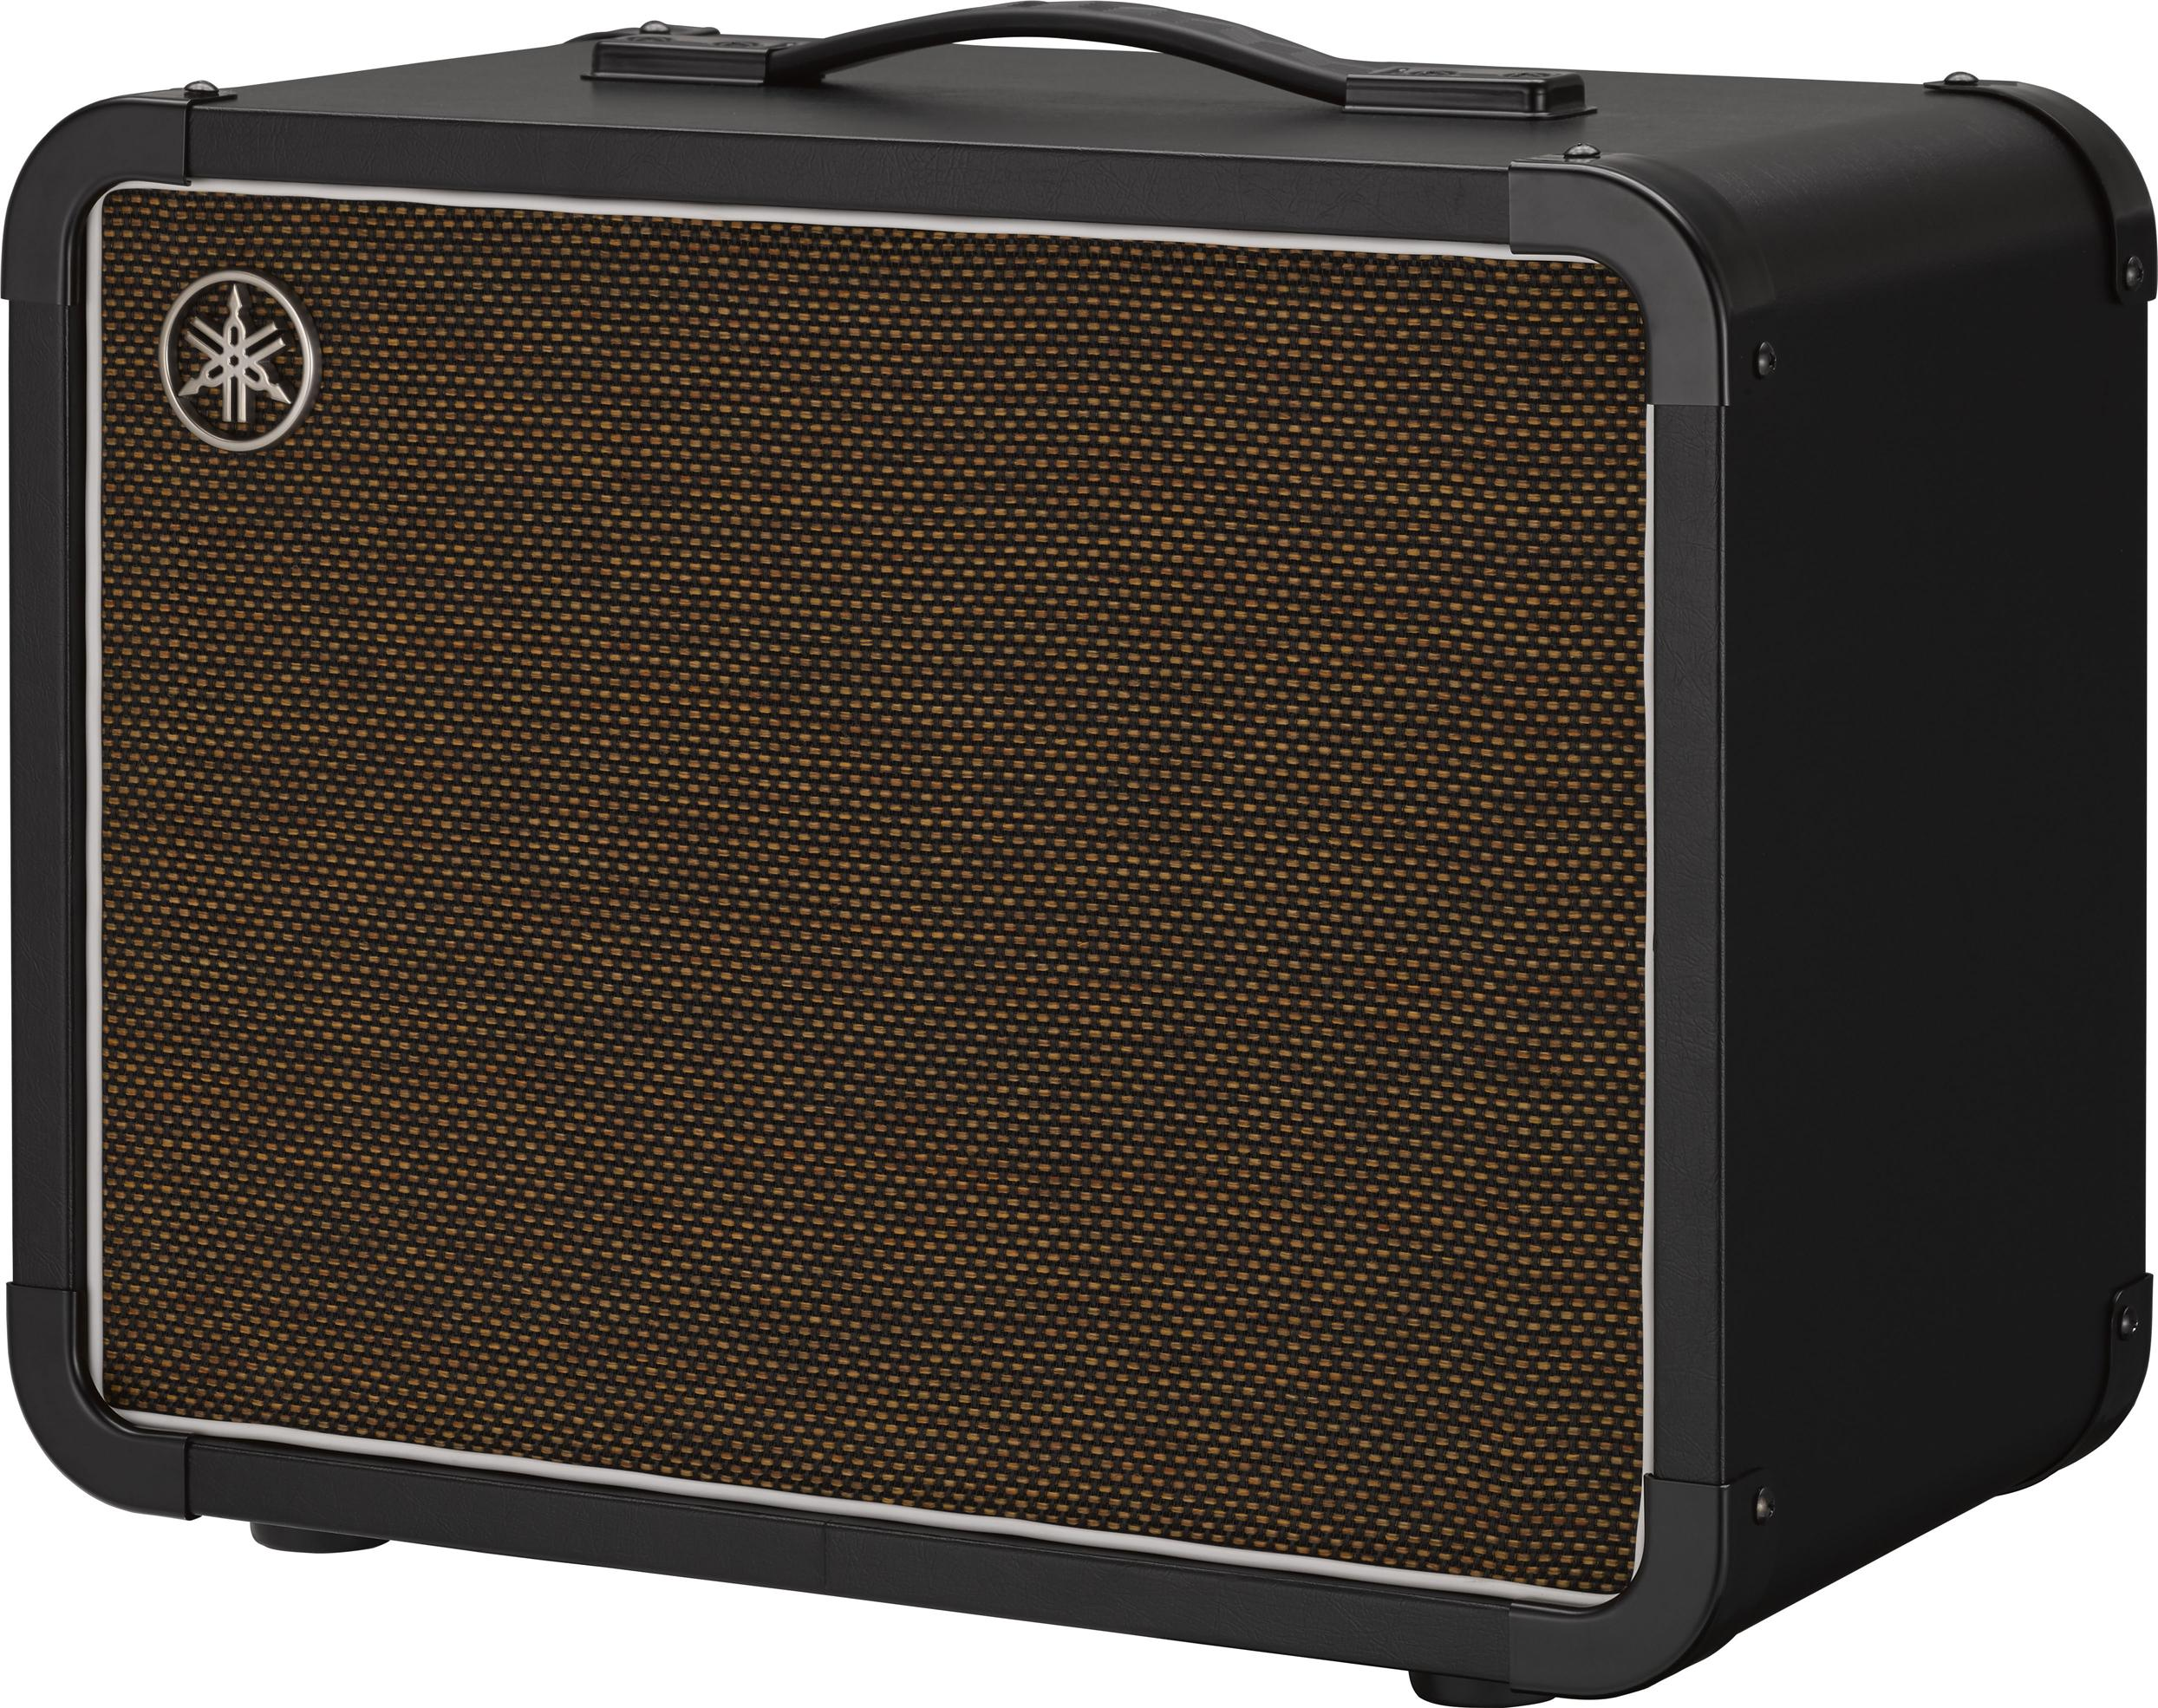 YAMAHA THRC112 (150W, 1x12') - Electric Guitar Amplifier Cabinet